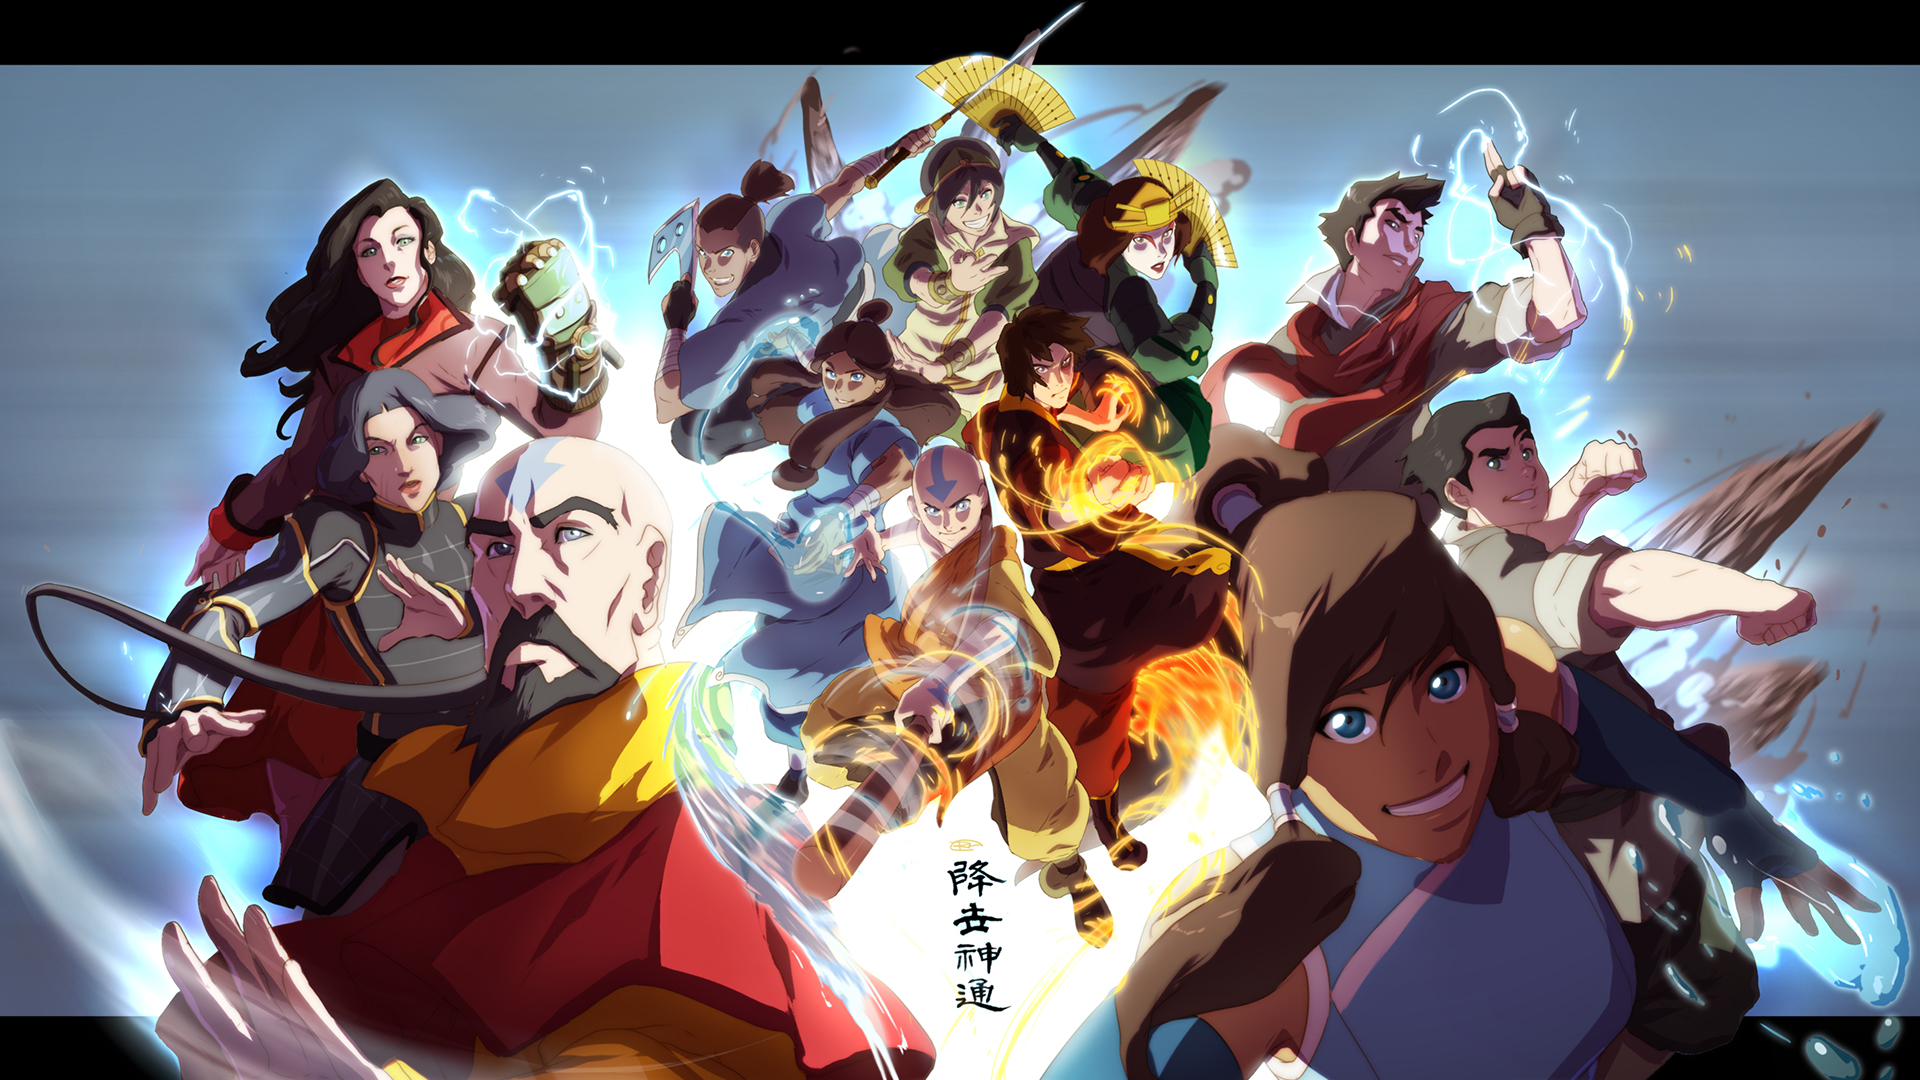 Avatar The Last Airbender Wallpapers High Quality Download